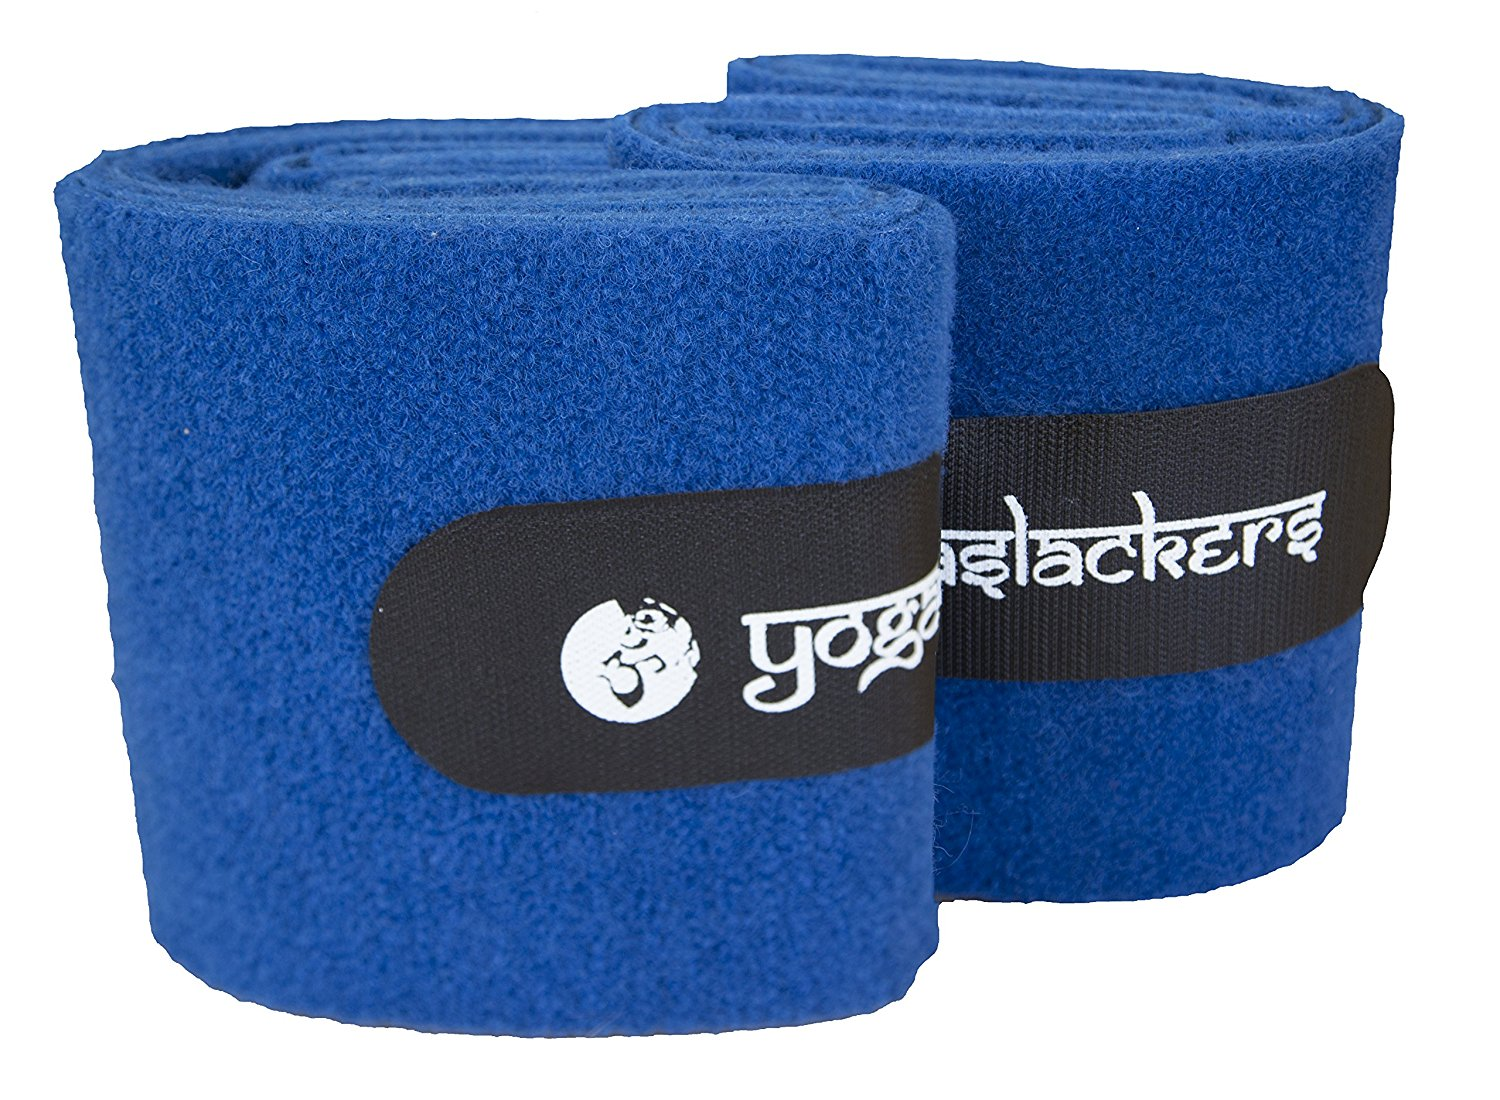 Yogaslackers Slackline Kit - 50 ft. eLine FULL KIT Slackrobats